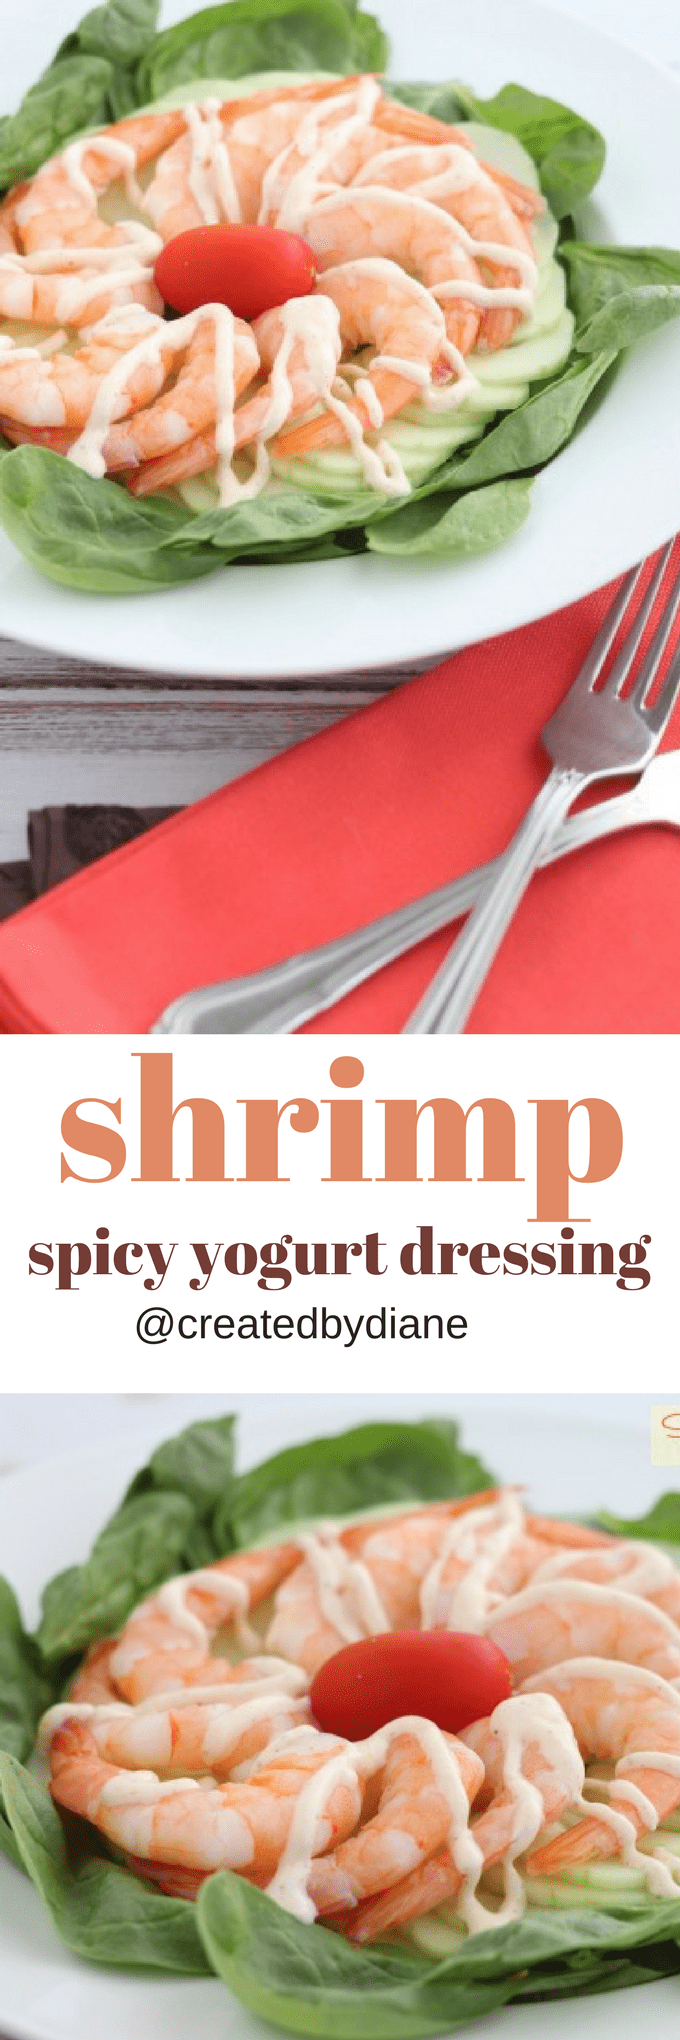 shrimp with spicy yogurt dressing @creatdbydiane